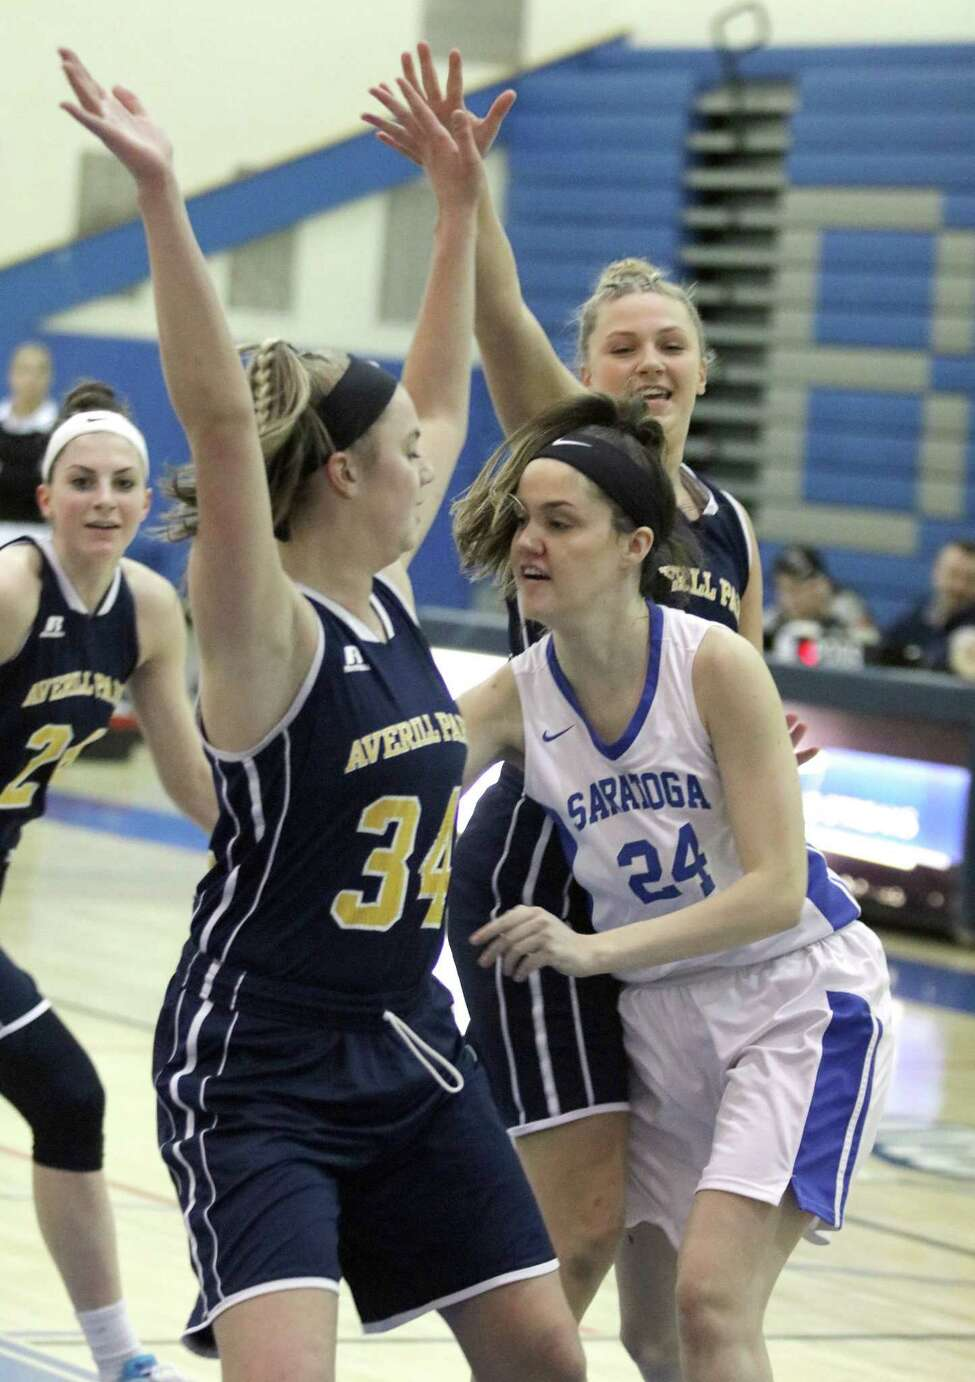 Saratoga's Aleida Woldring passes the ball behind Averill Park defender Kelsey Wood during girls varsity basketball action at Saratoga Springs High School Friday, Feb. 2, 2018. (Ed Burke - Special to The Times Union)